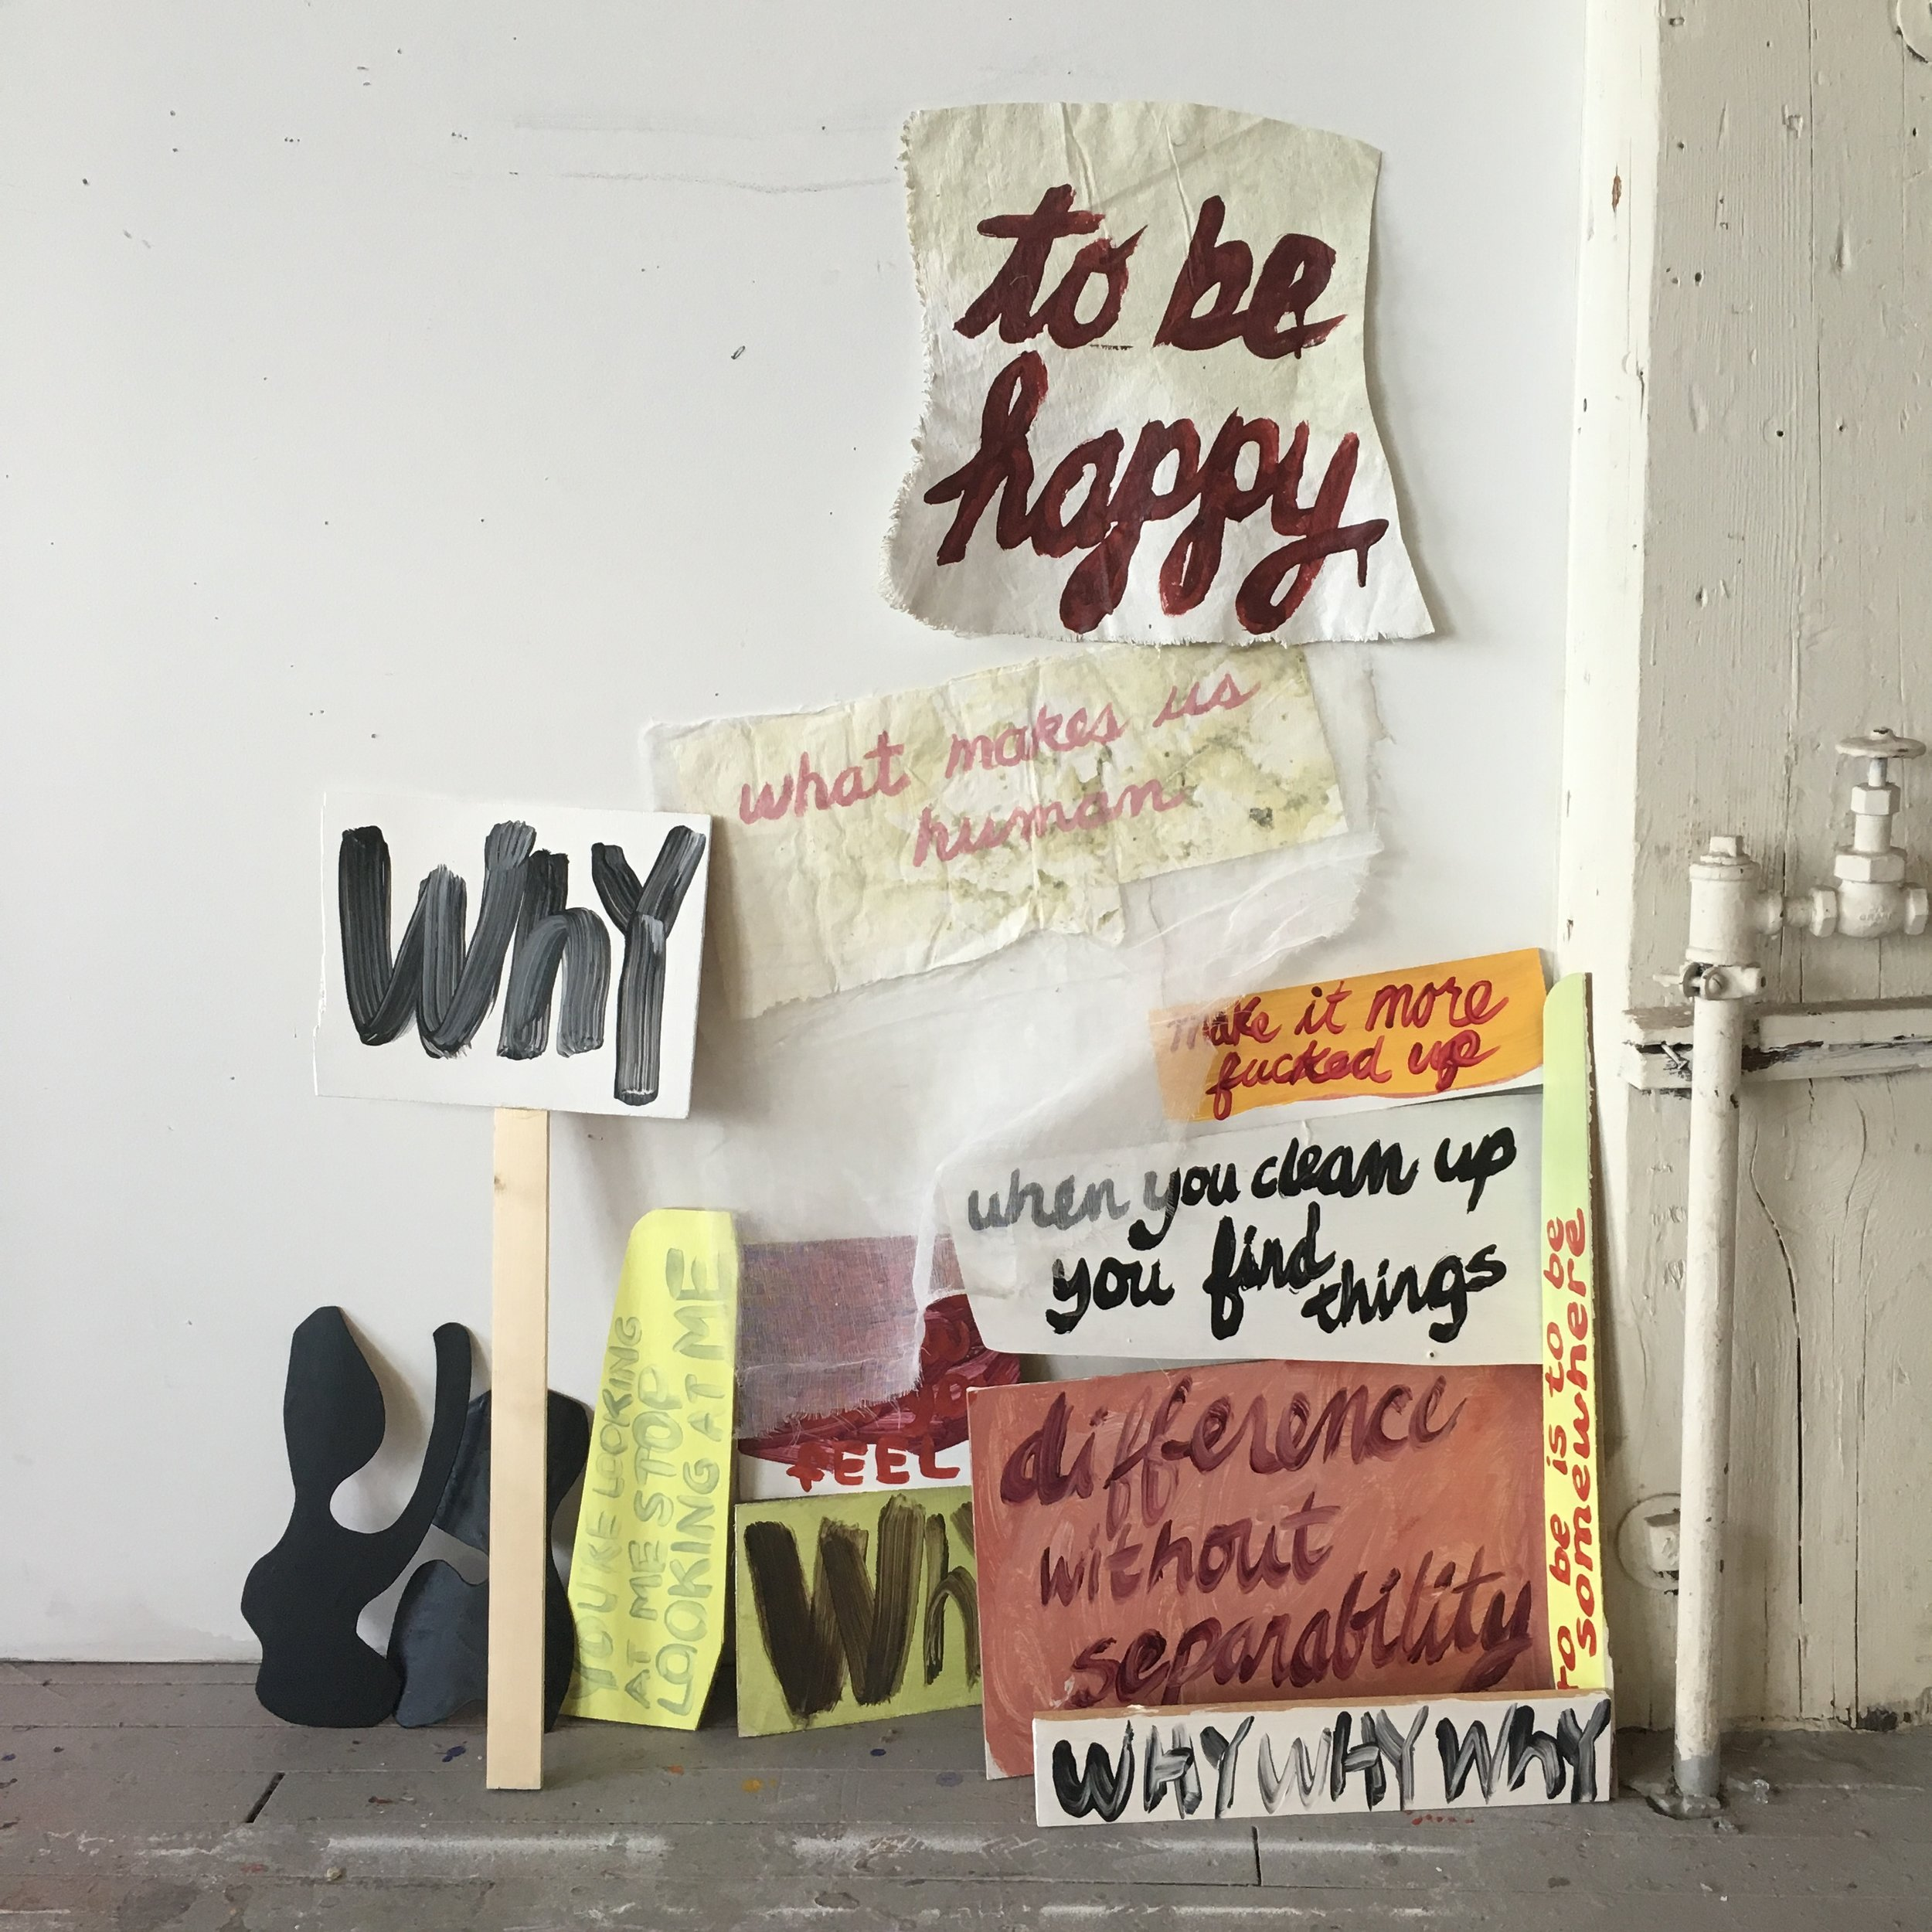 A more condensed version of the summer installation. The language is from my personal history, visiting artist's talks, studio visit conversations. As the work evolves, I'm picking up language from the streets of Chicago, our Art Ideas readings...whatever jumps out.